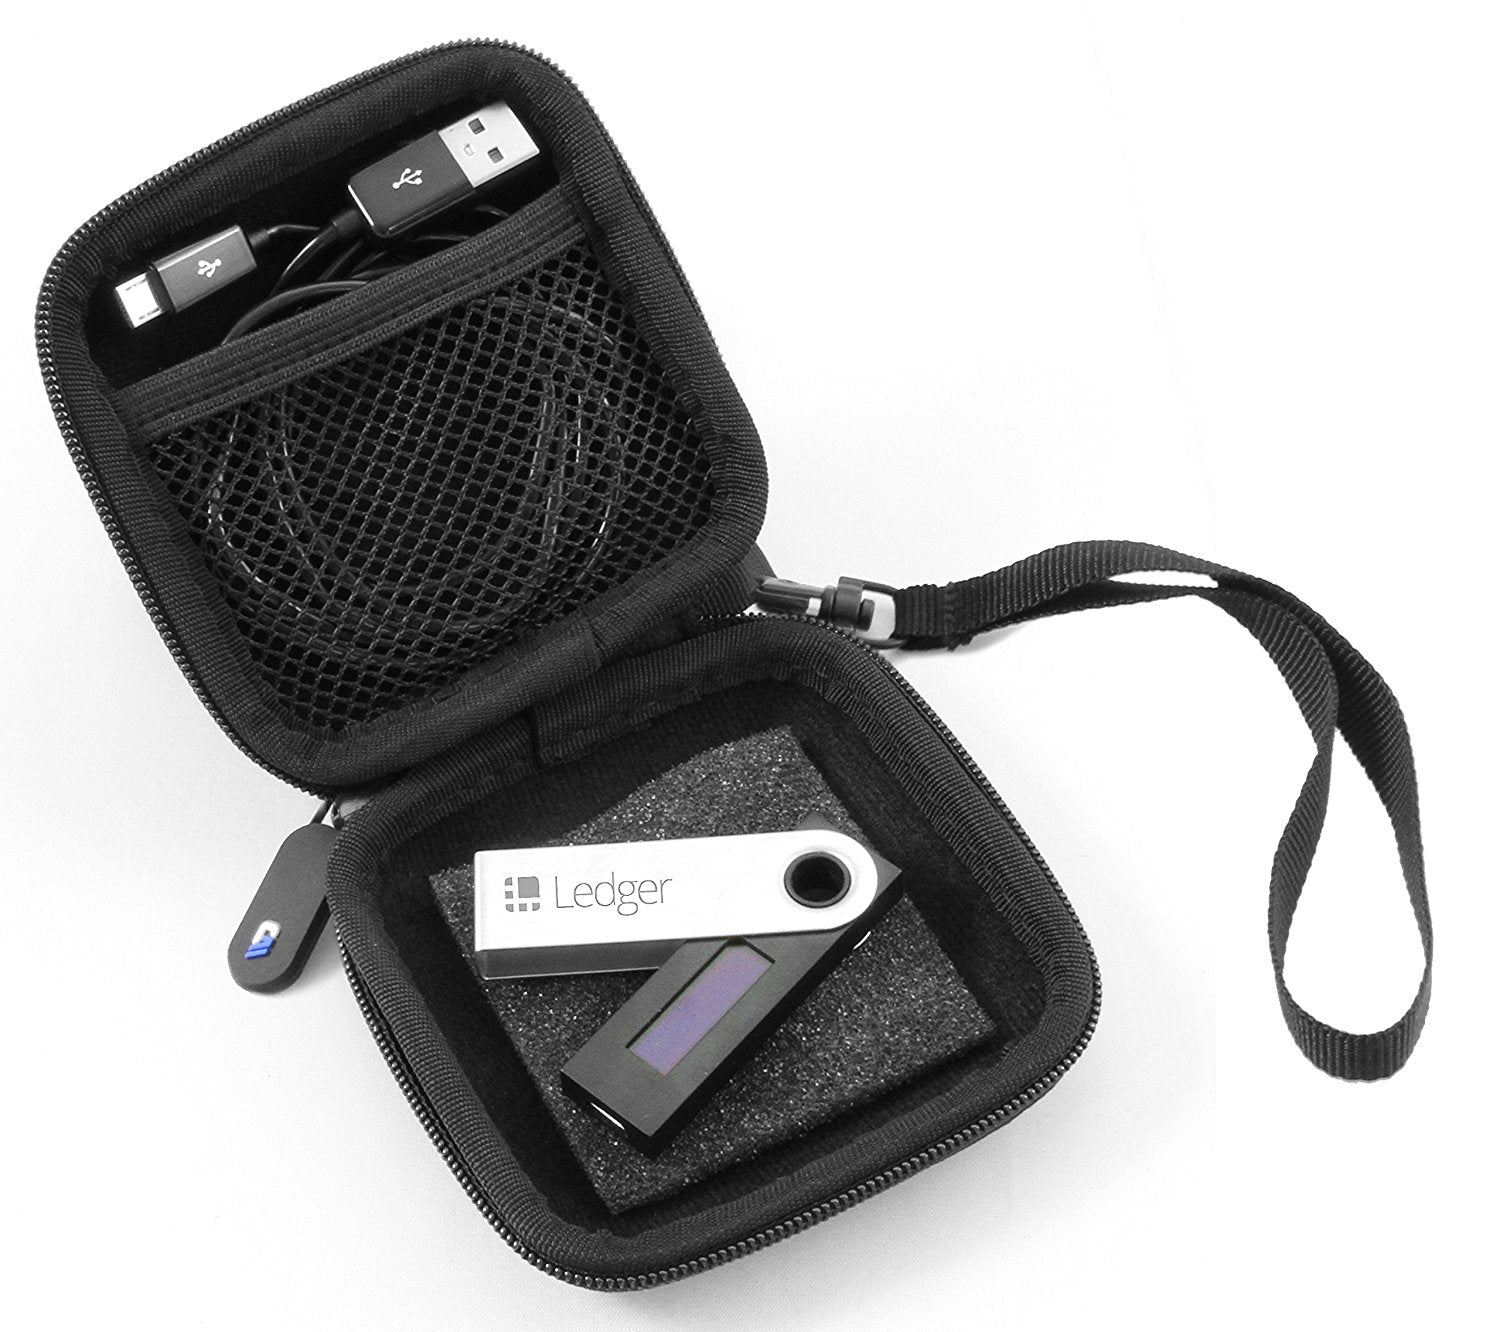 Casematix Carry Case For Cryptocurrency Bitcoin Hardware Wallet Fits Ledger Nano S Satoshi Labs Trezor